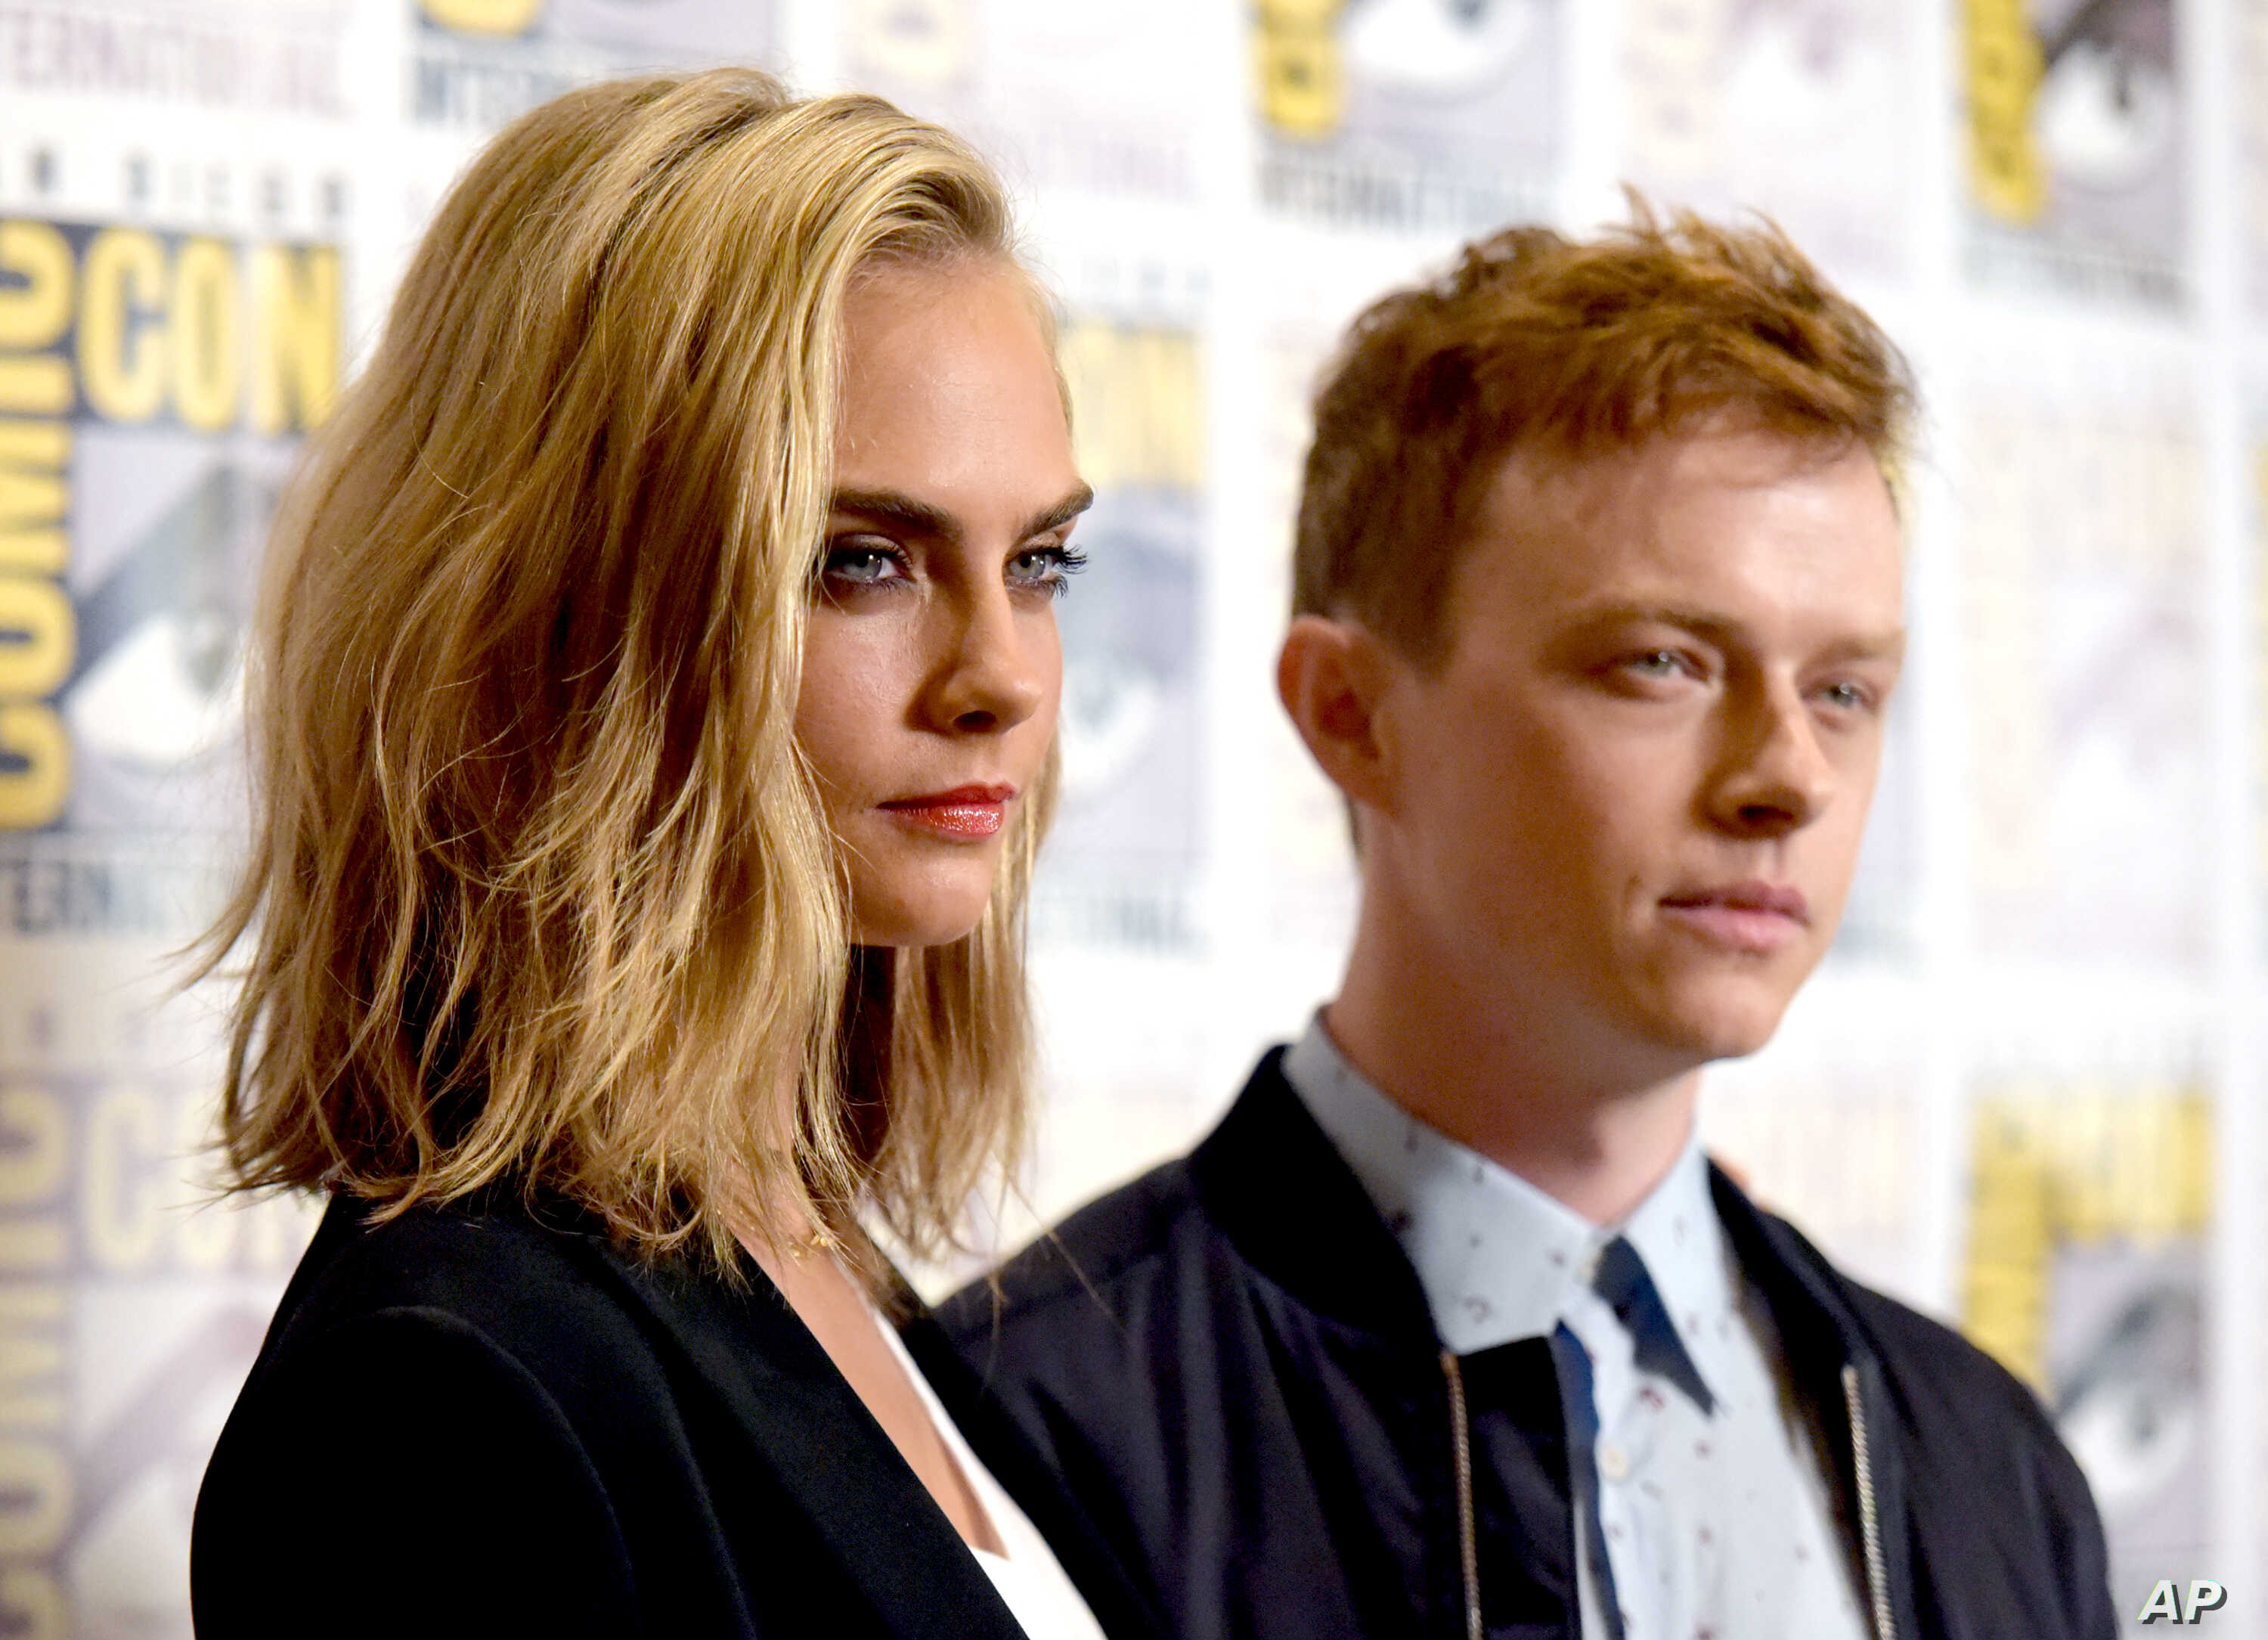 """Cara Delevingne and Dane DeHaan attend the """"Valerian and the City of a Thousand Planets"""" press line on Day 1 of Comic-Con International in San Diego, July 21, 2016."""